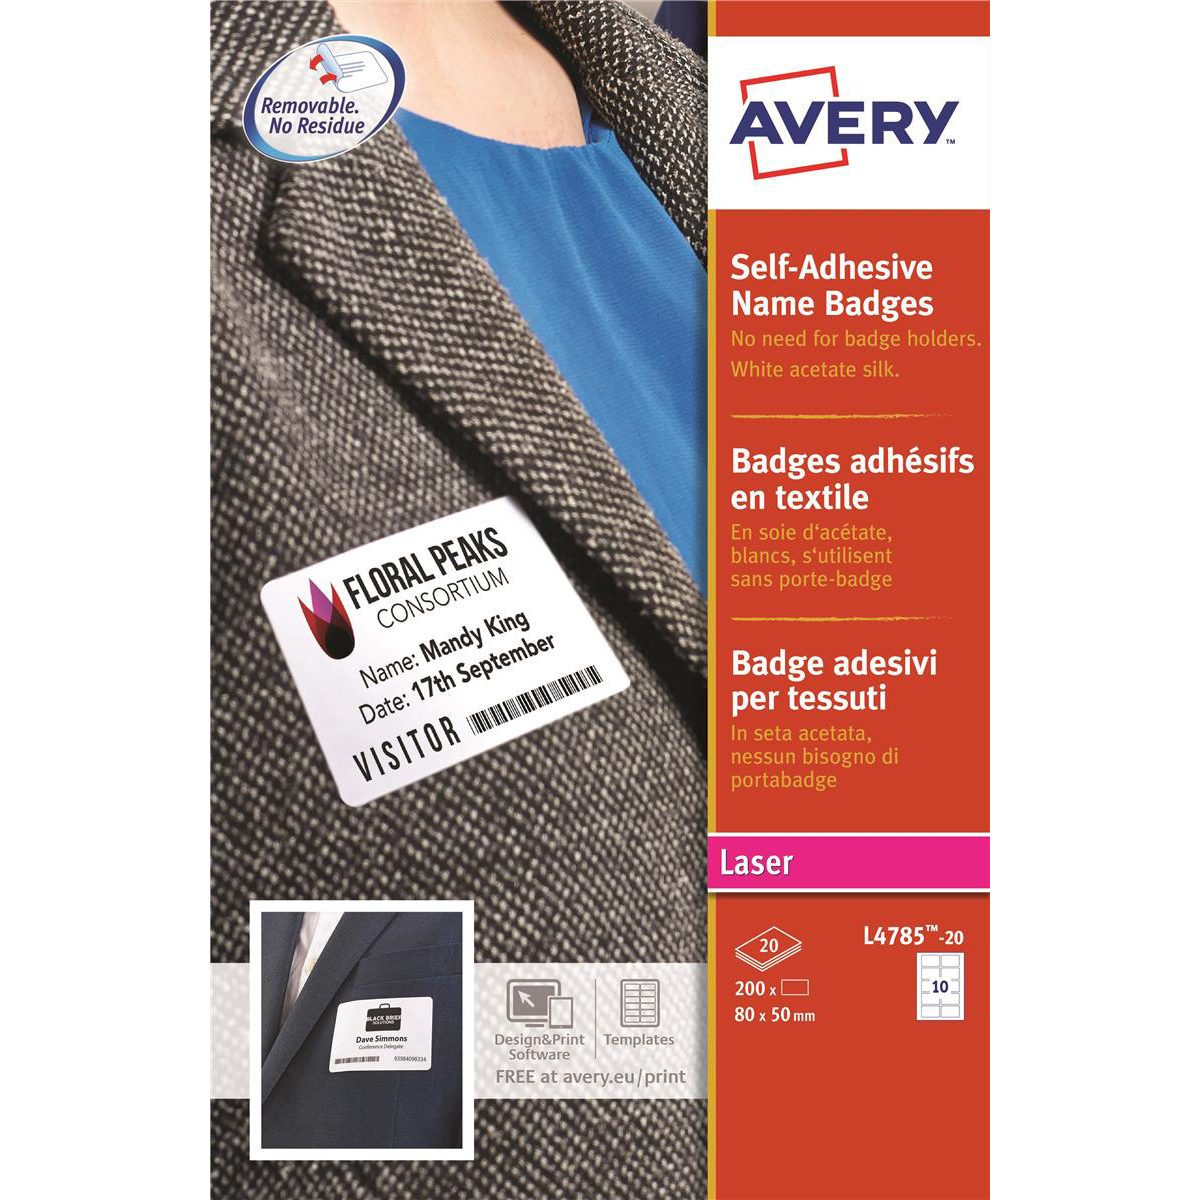 Badges or badge holders Avery Name Badge Labels Laser Self-adhesive 80x50mm White Ref L4785-20 200 Labels